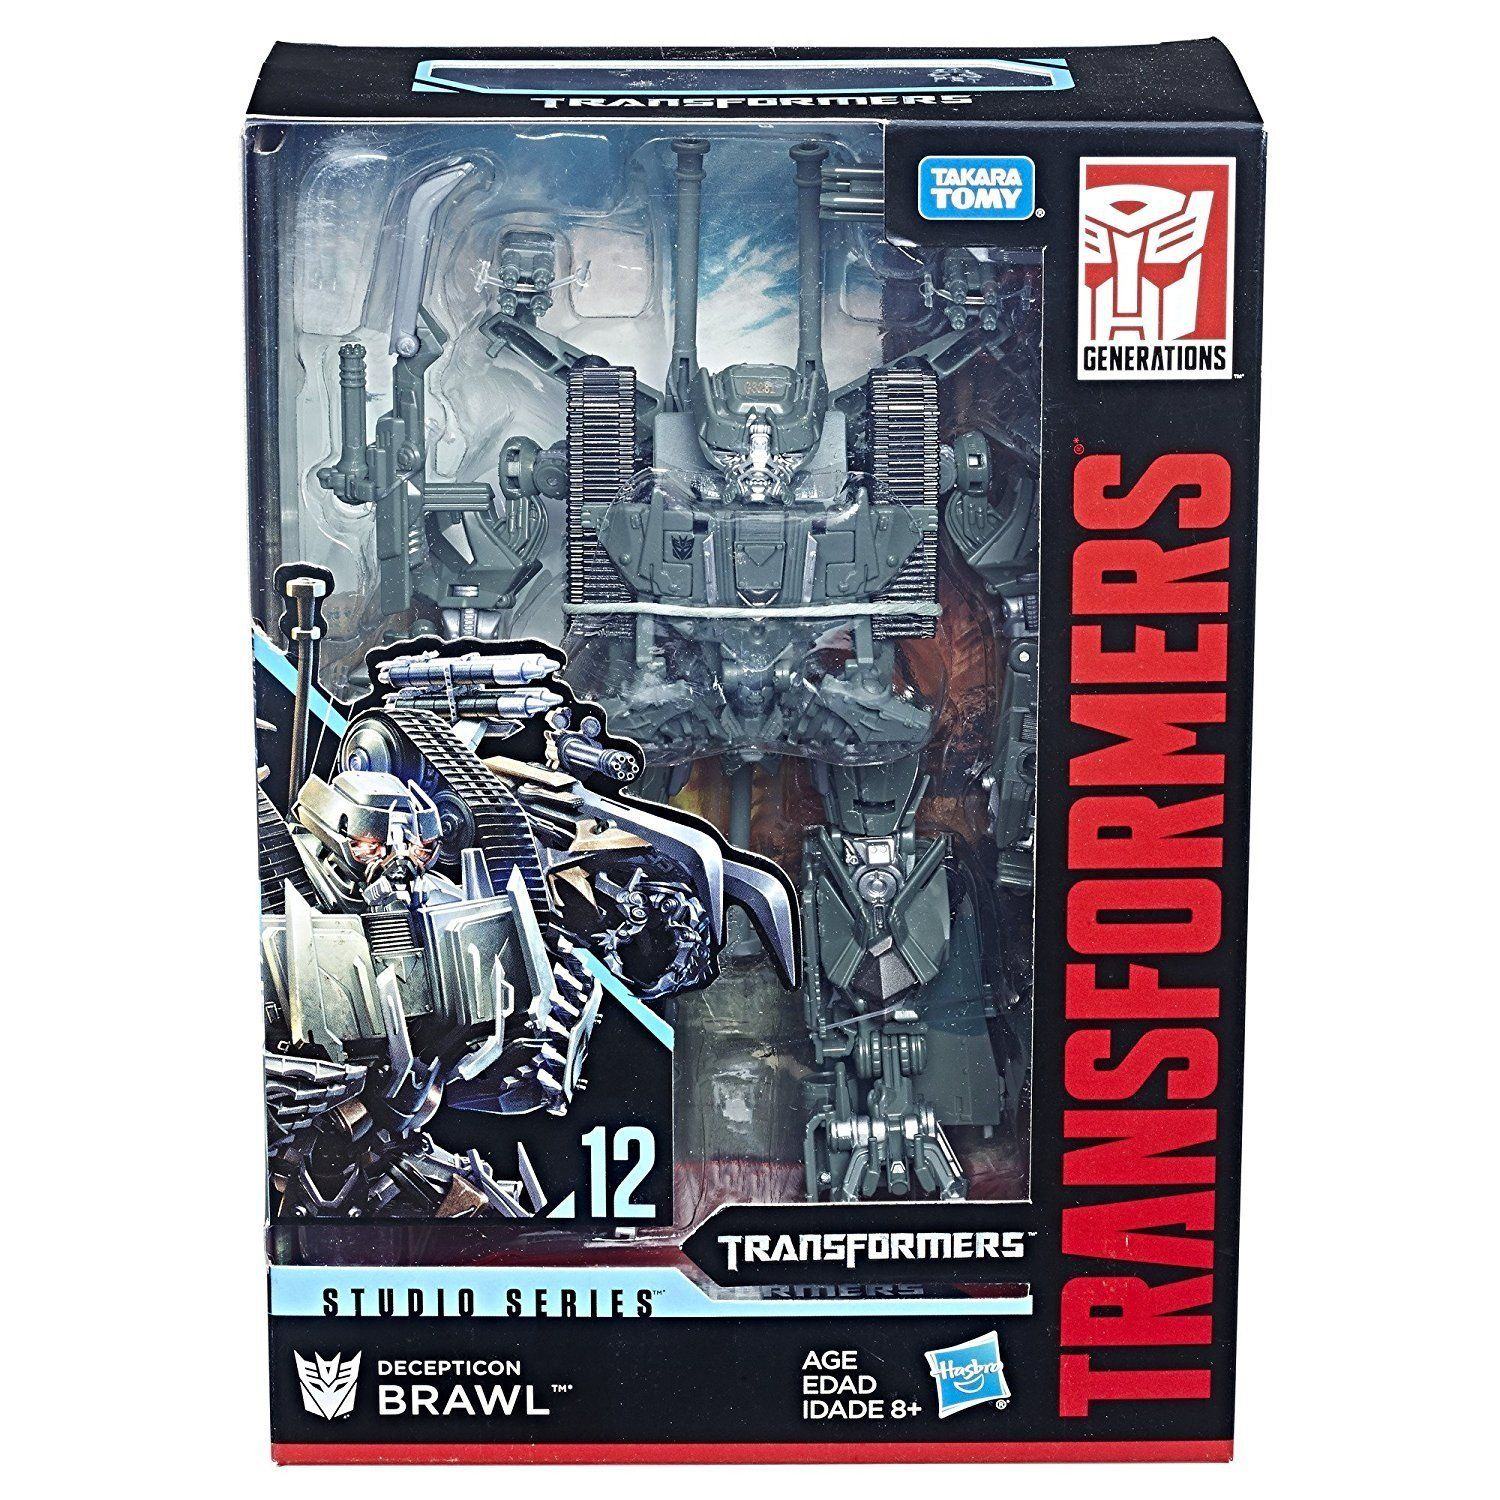 2 PCS Transformers Studios Series Voyager Wave 2 Decepticon Brawl and Megatron